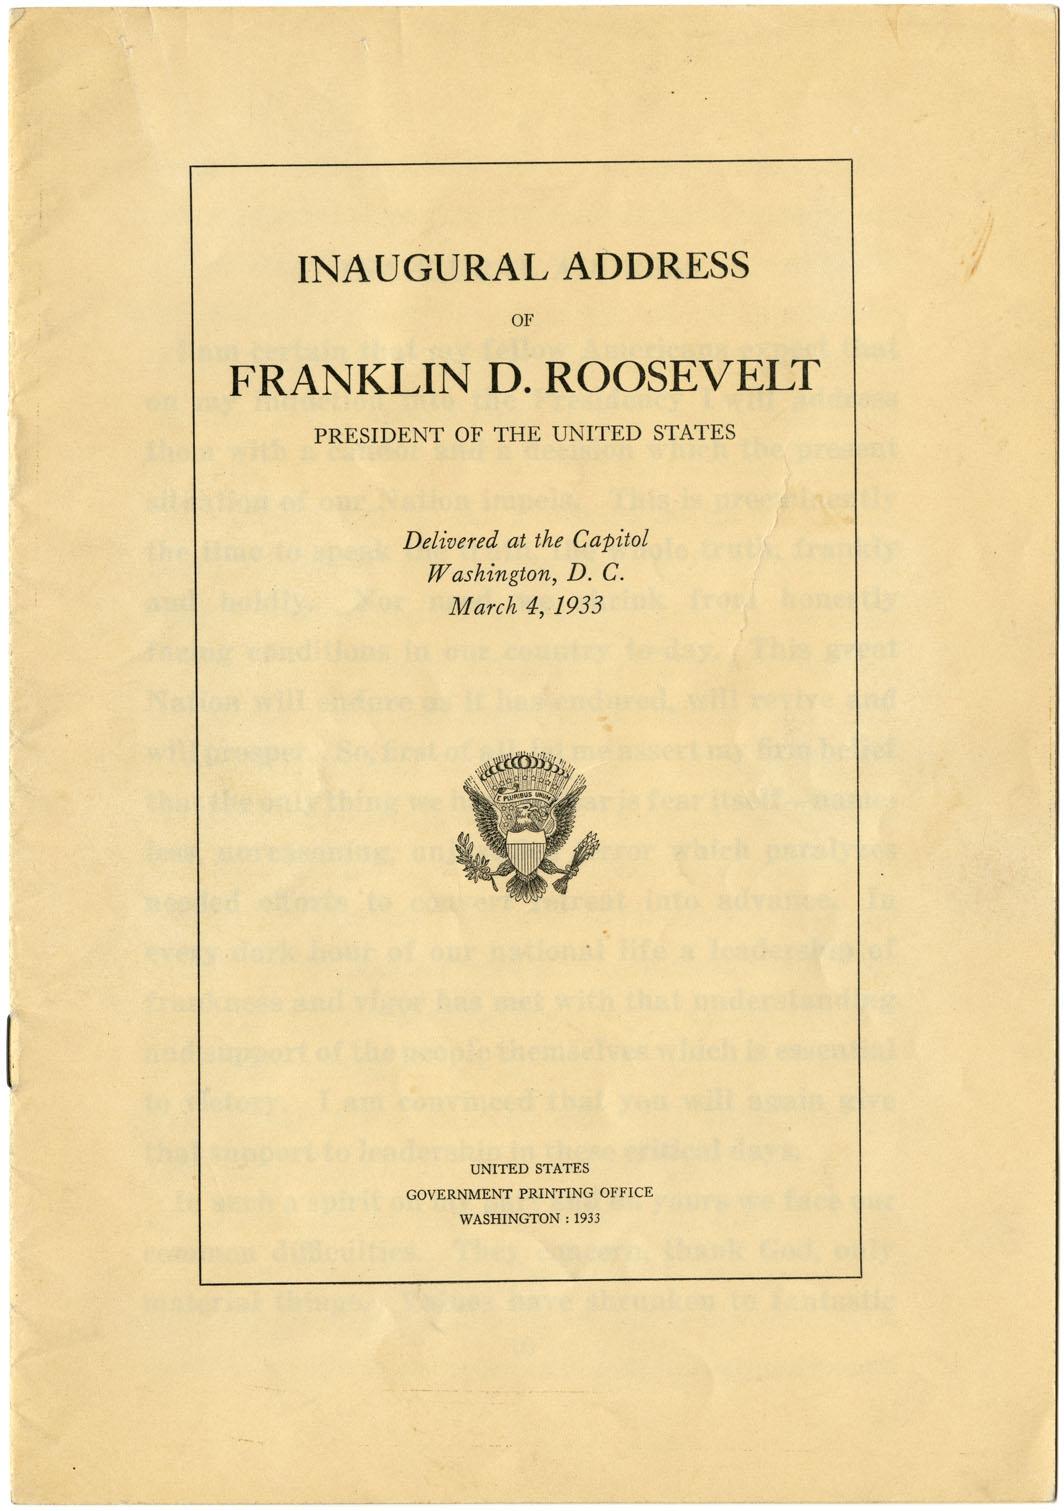 First Inaugural Address of Franklin D. Roosevelt, March 4, 1933. (GLC00675)